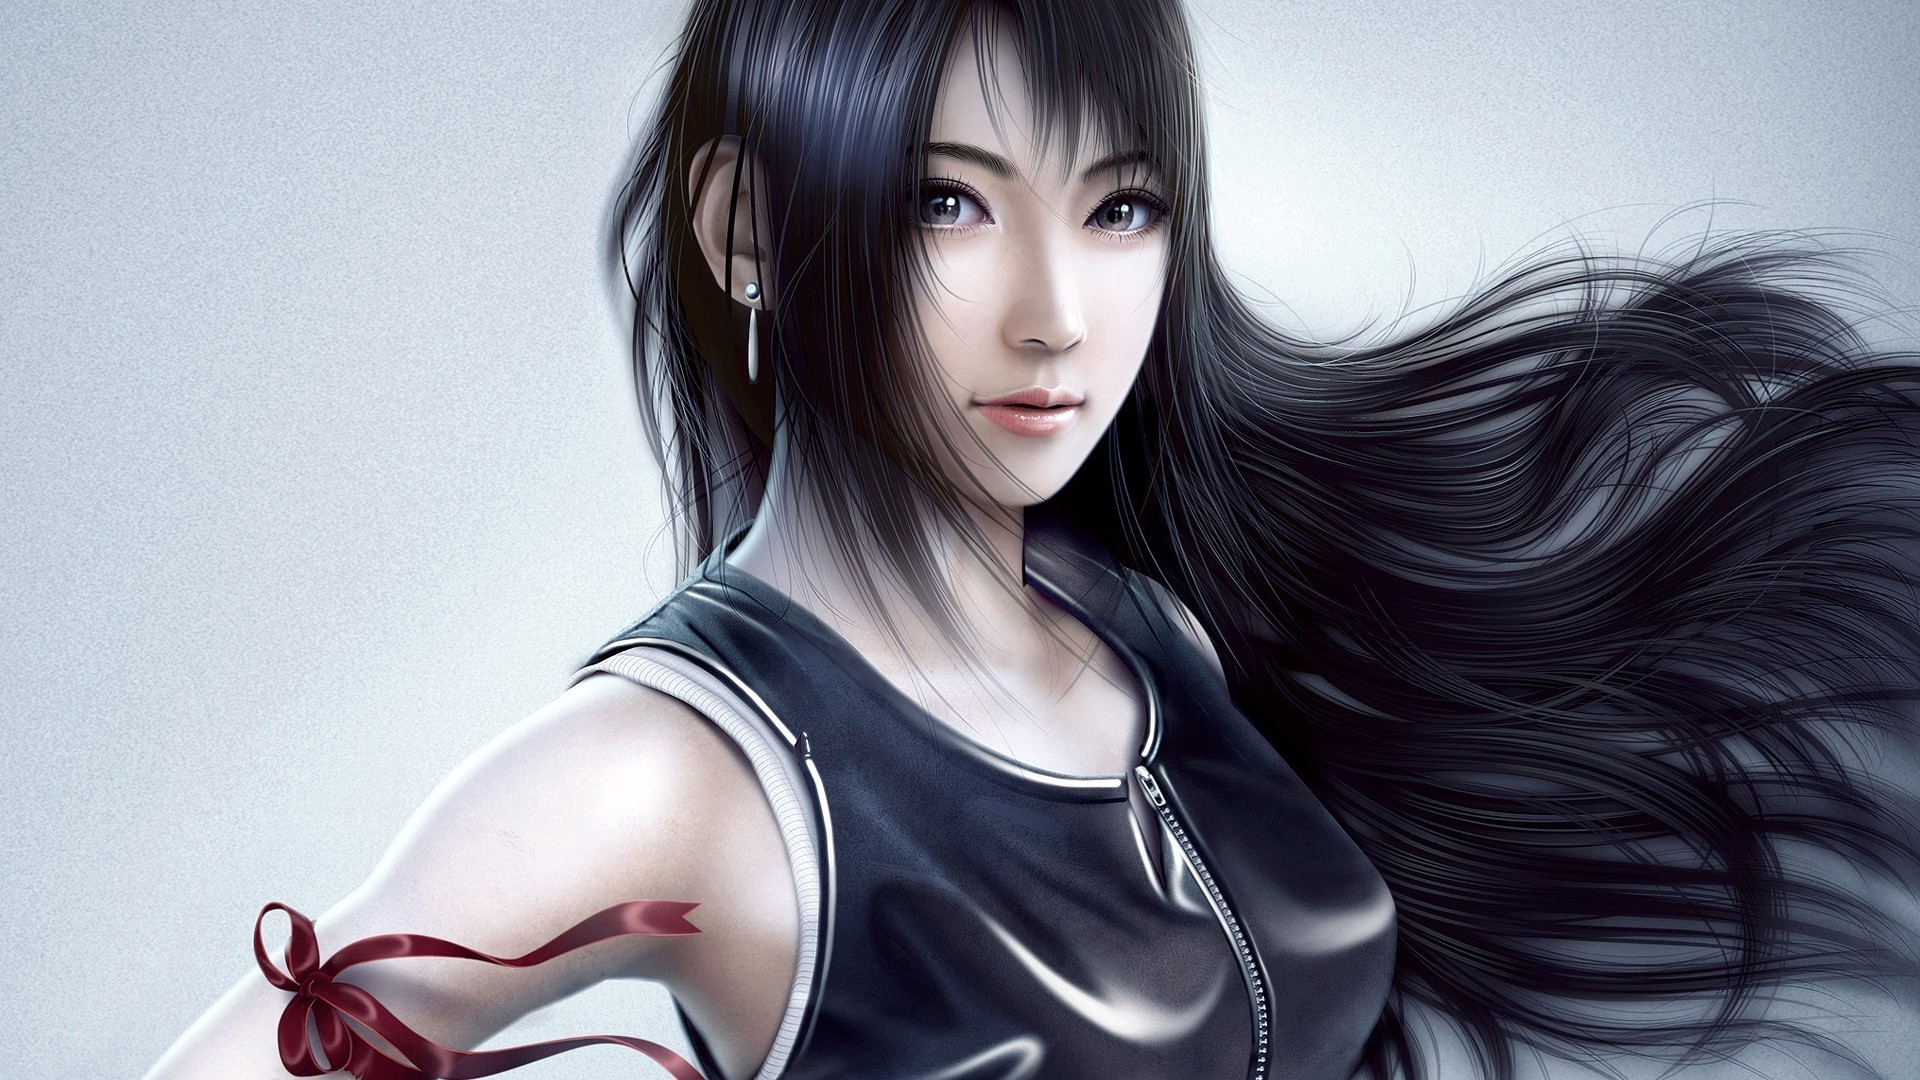 Tifa Lockhart Wallpaper 64 Images